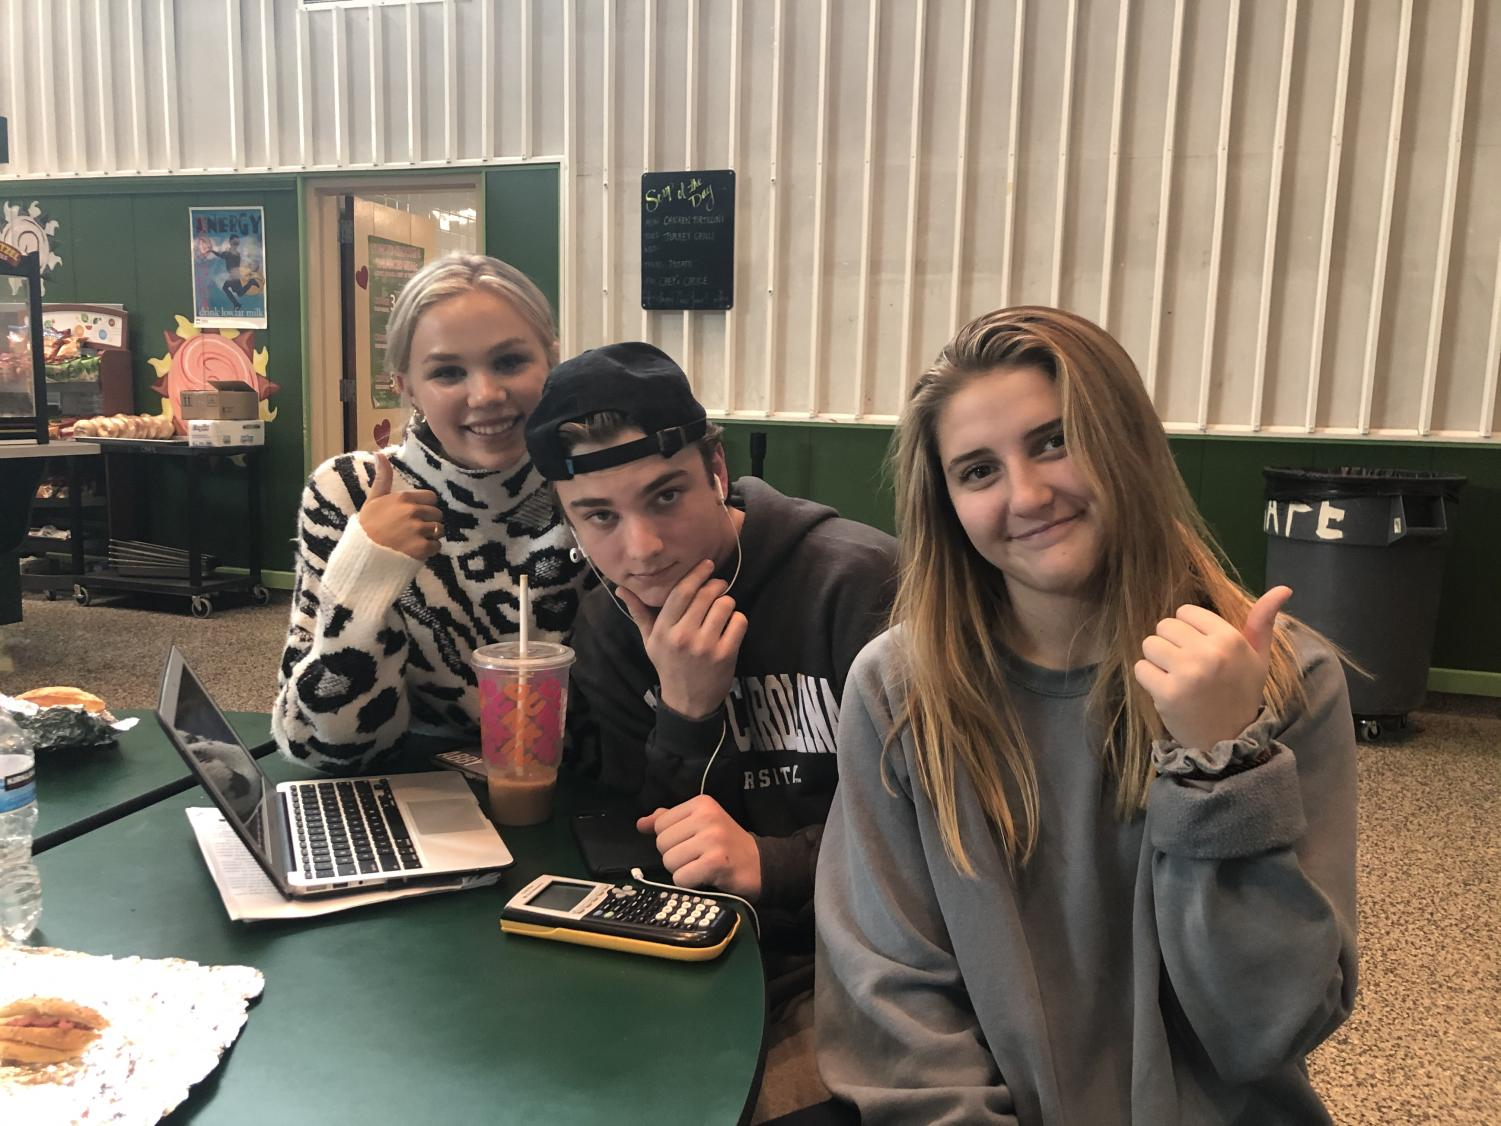 From left to right is Abby Gobler, Christian Capuano, and Caroline Henke